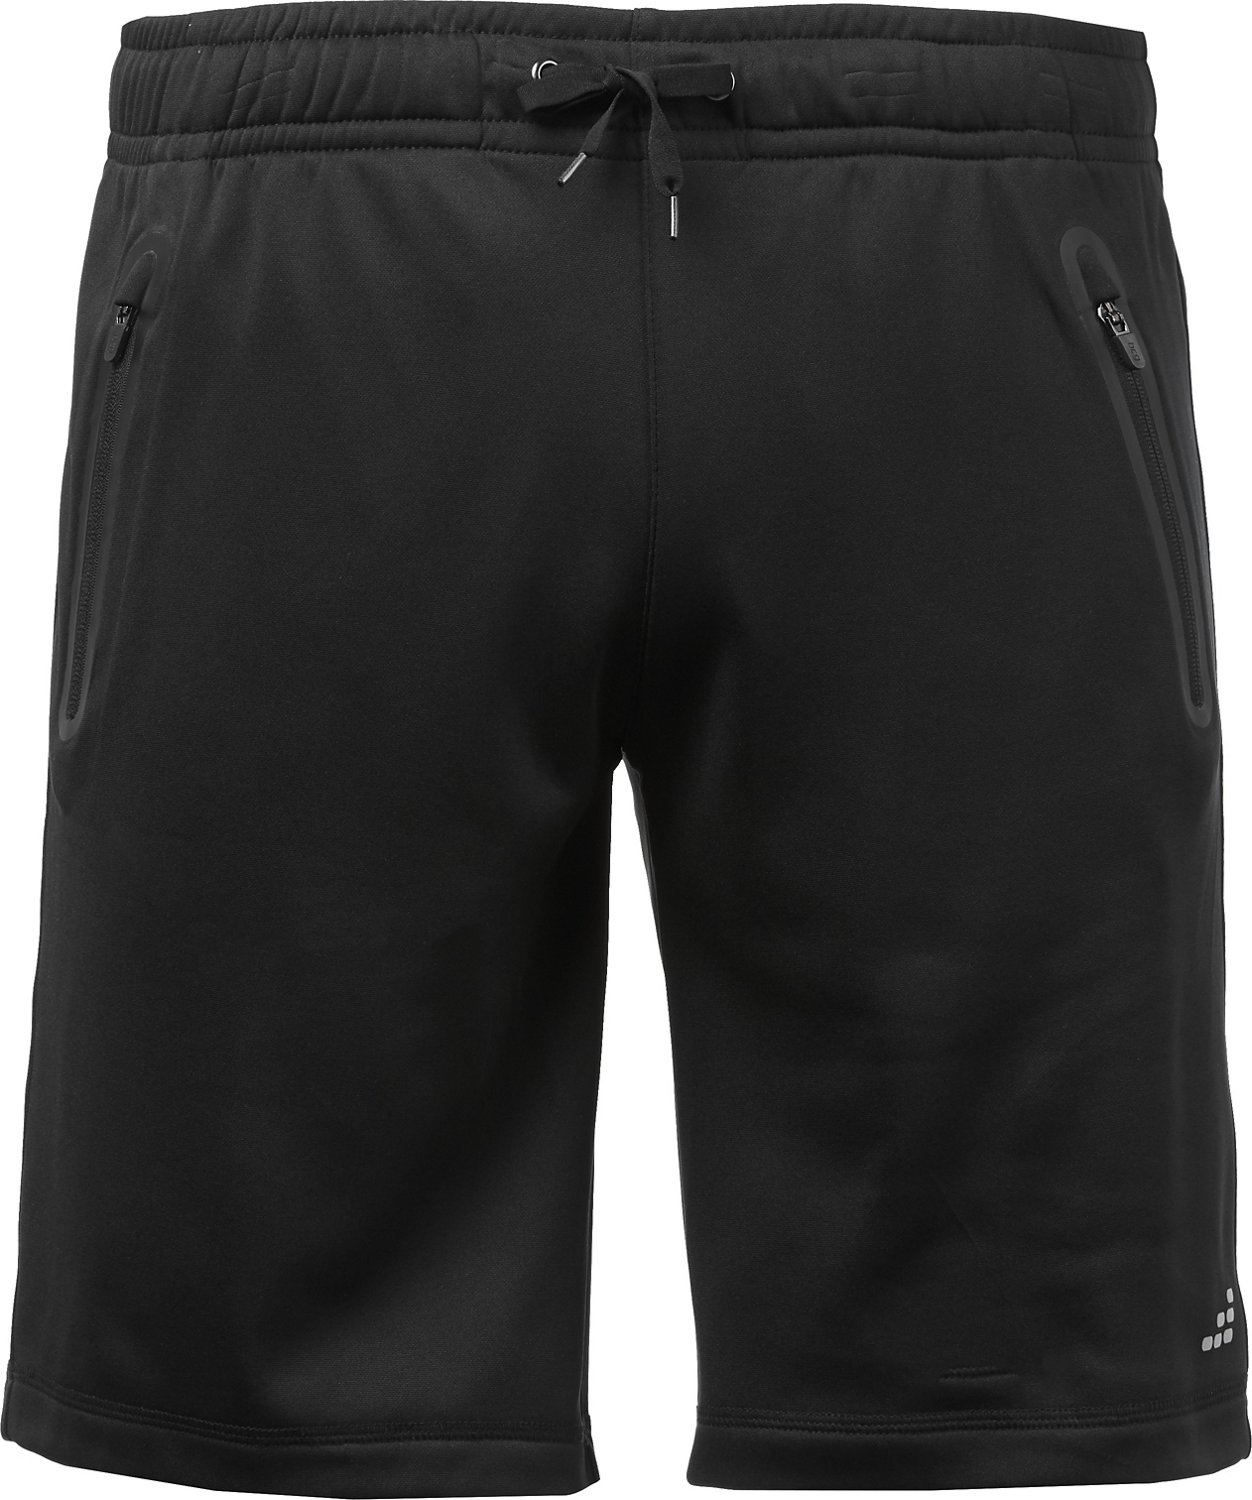 70263742e170f8 Display product reviews for BCG Men s Athletic Lifestyle Shorts